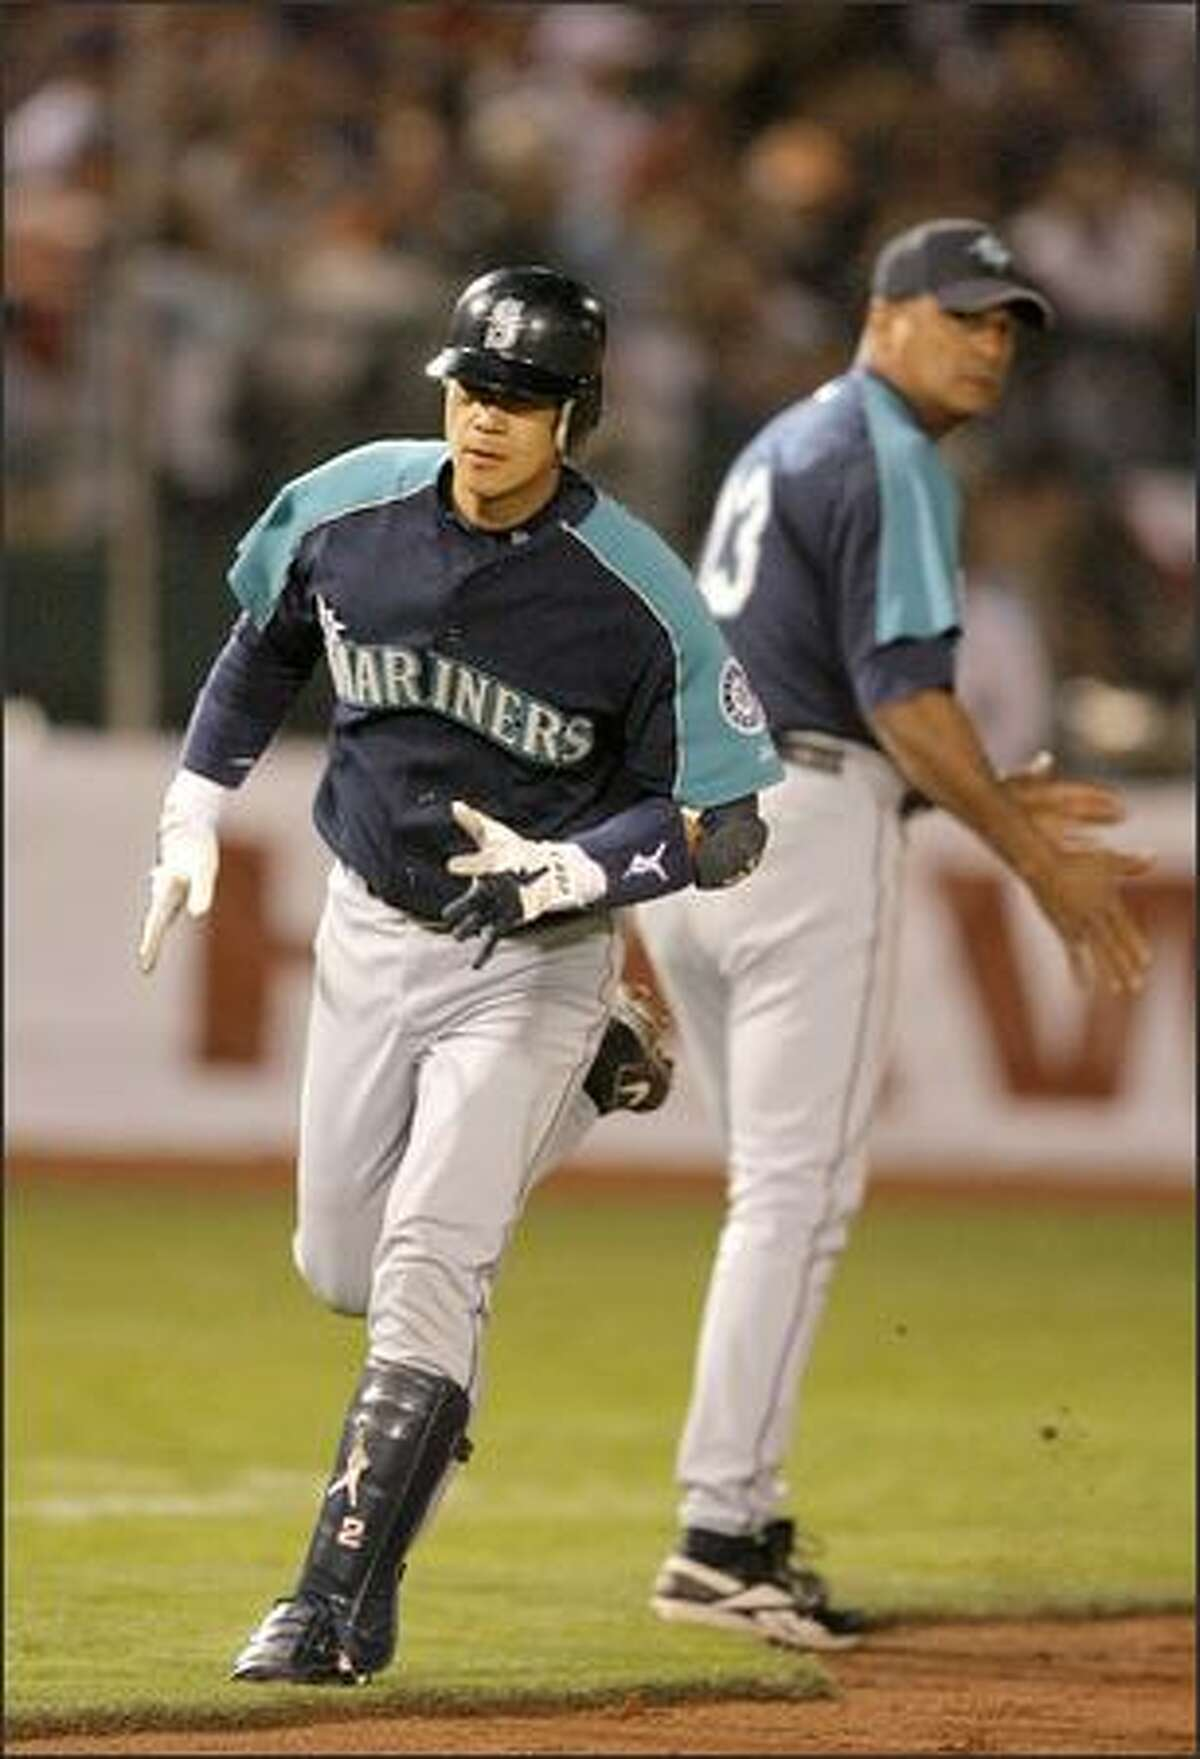 Mariners carcher Kenji Johjima rounds the bases on a solo home run against the Dodgers in Las Vegas.